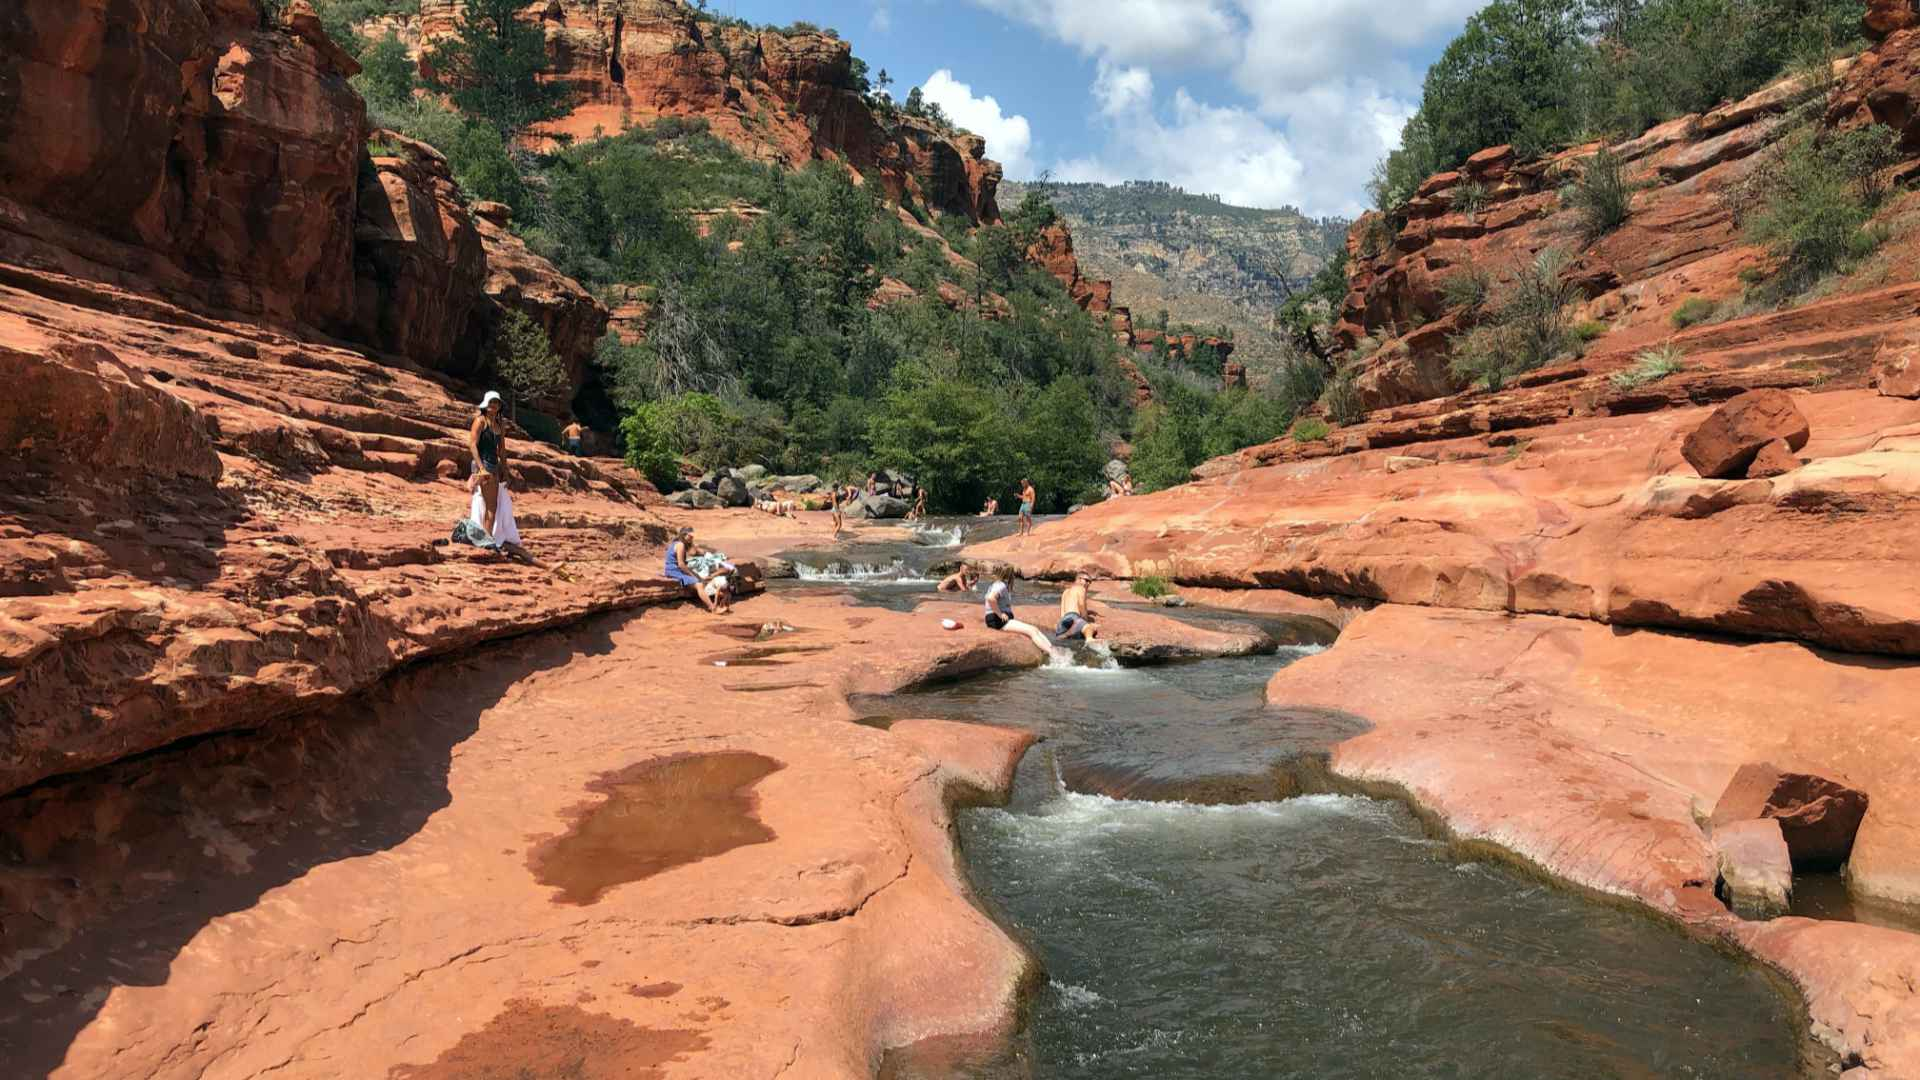 An algae on these rocks at Slide Rock State Park creates a natural water slide! What a great way to recover after hiking.